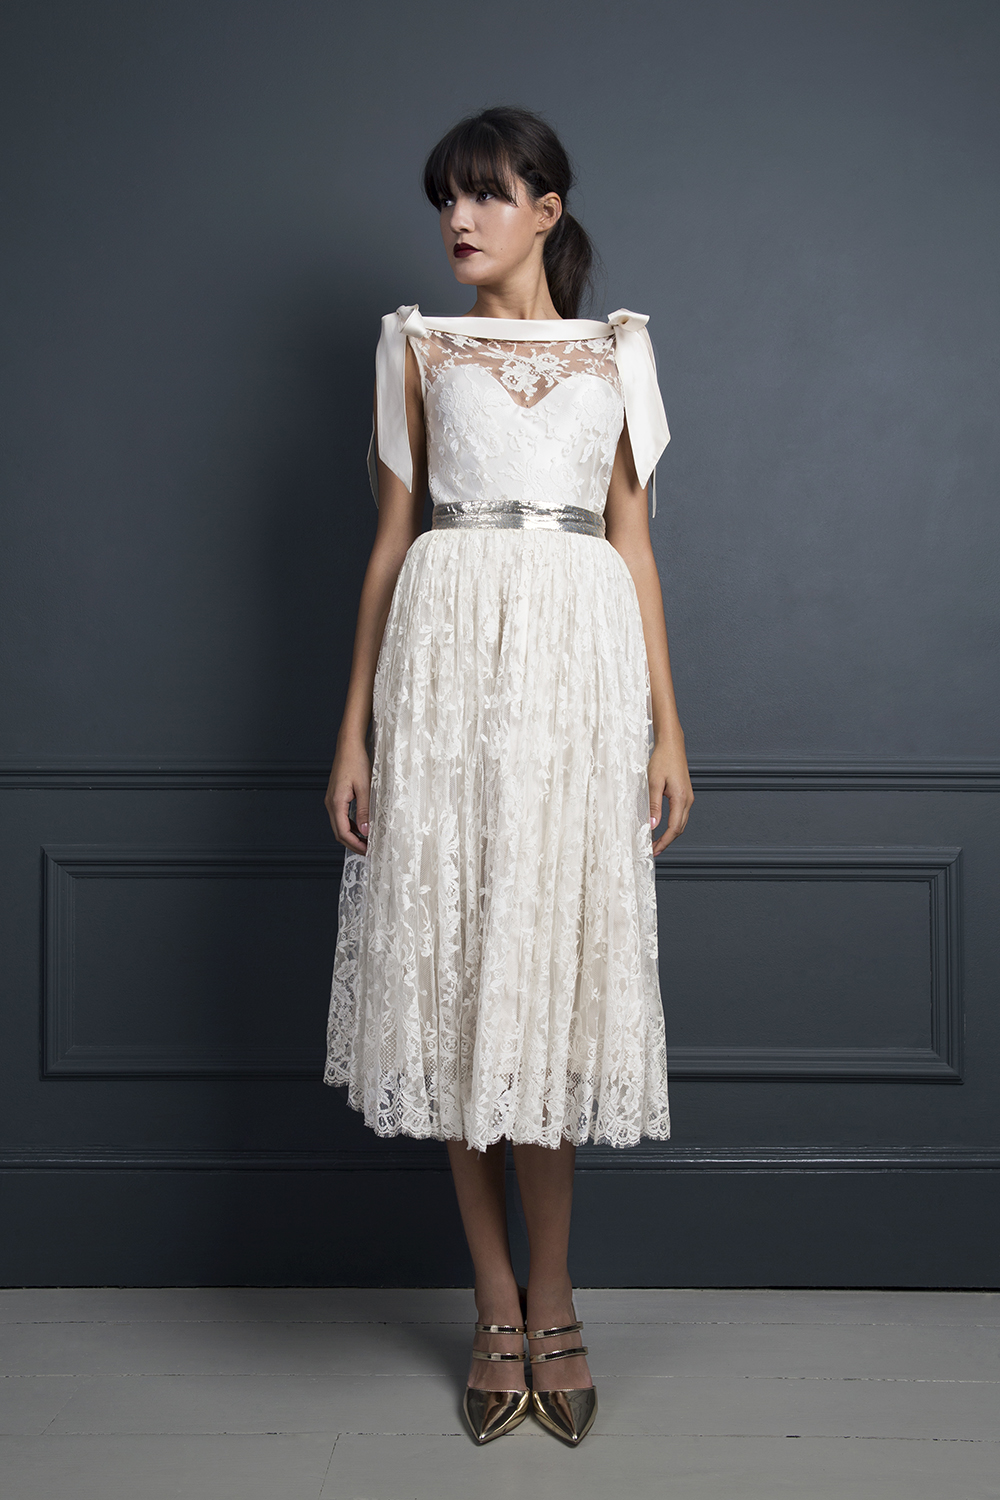 Christabelle skirt and Irene top | Tea length, short wedding dress by Halfpenny London